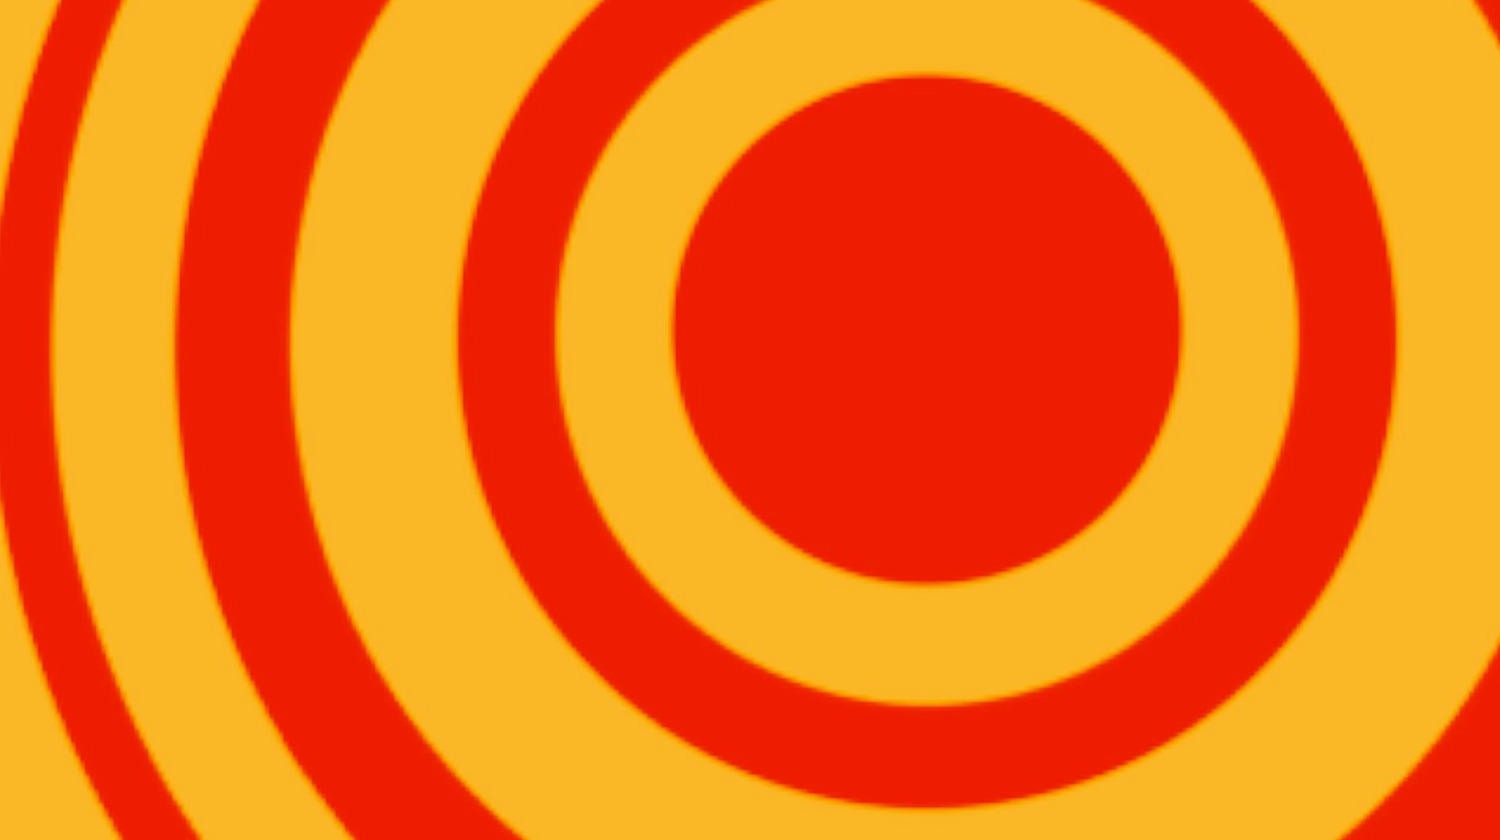 create your own targets at midlife